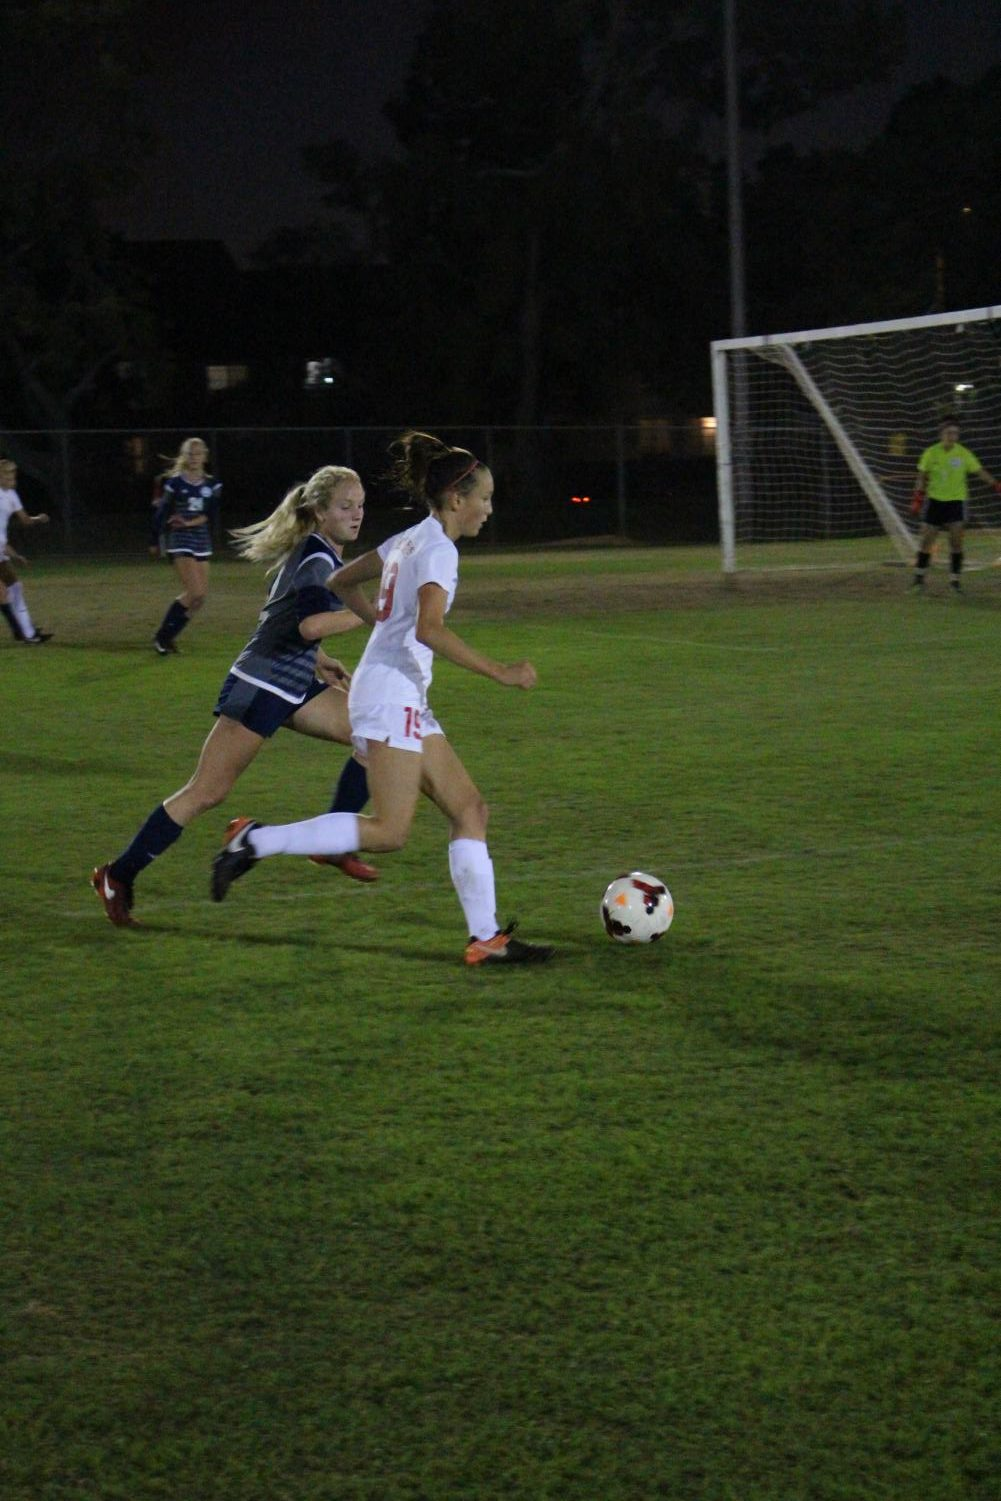 Sophomore Hannah Cooper gains control of the ball and runs towards the goal.